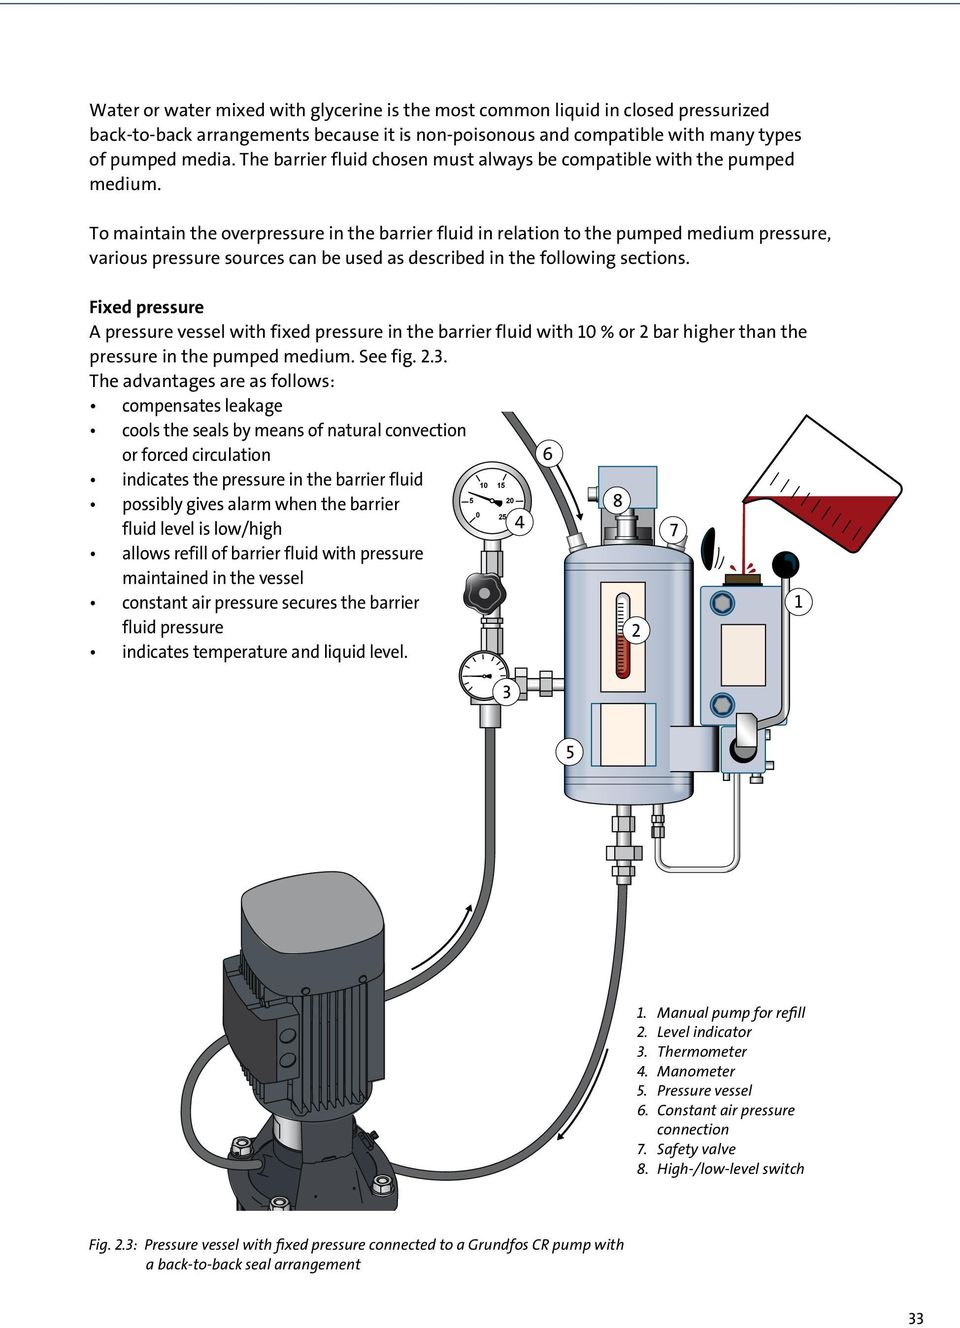 To maintain the overpressure in the barrier fluid in relation to the pumped medium pressure, various pressure sources can be used as described in the following sections.